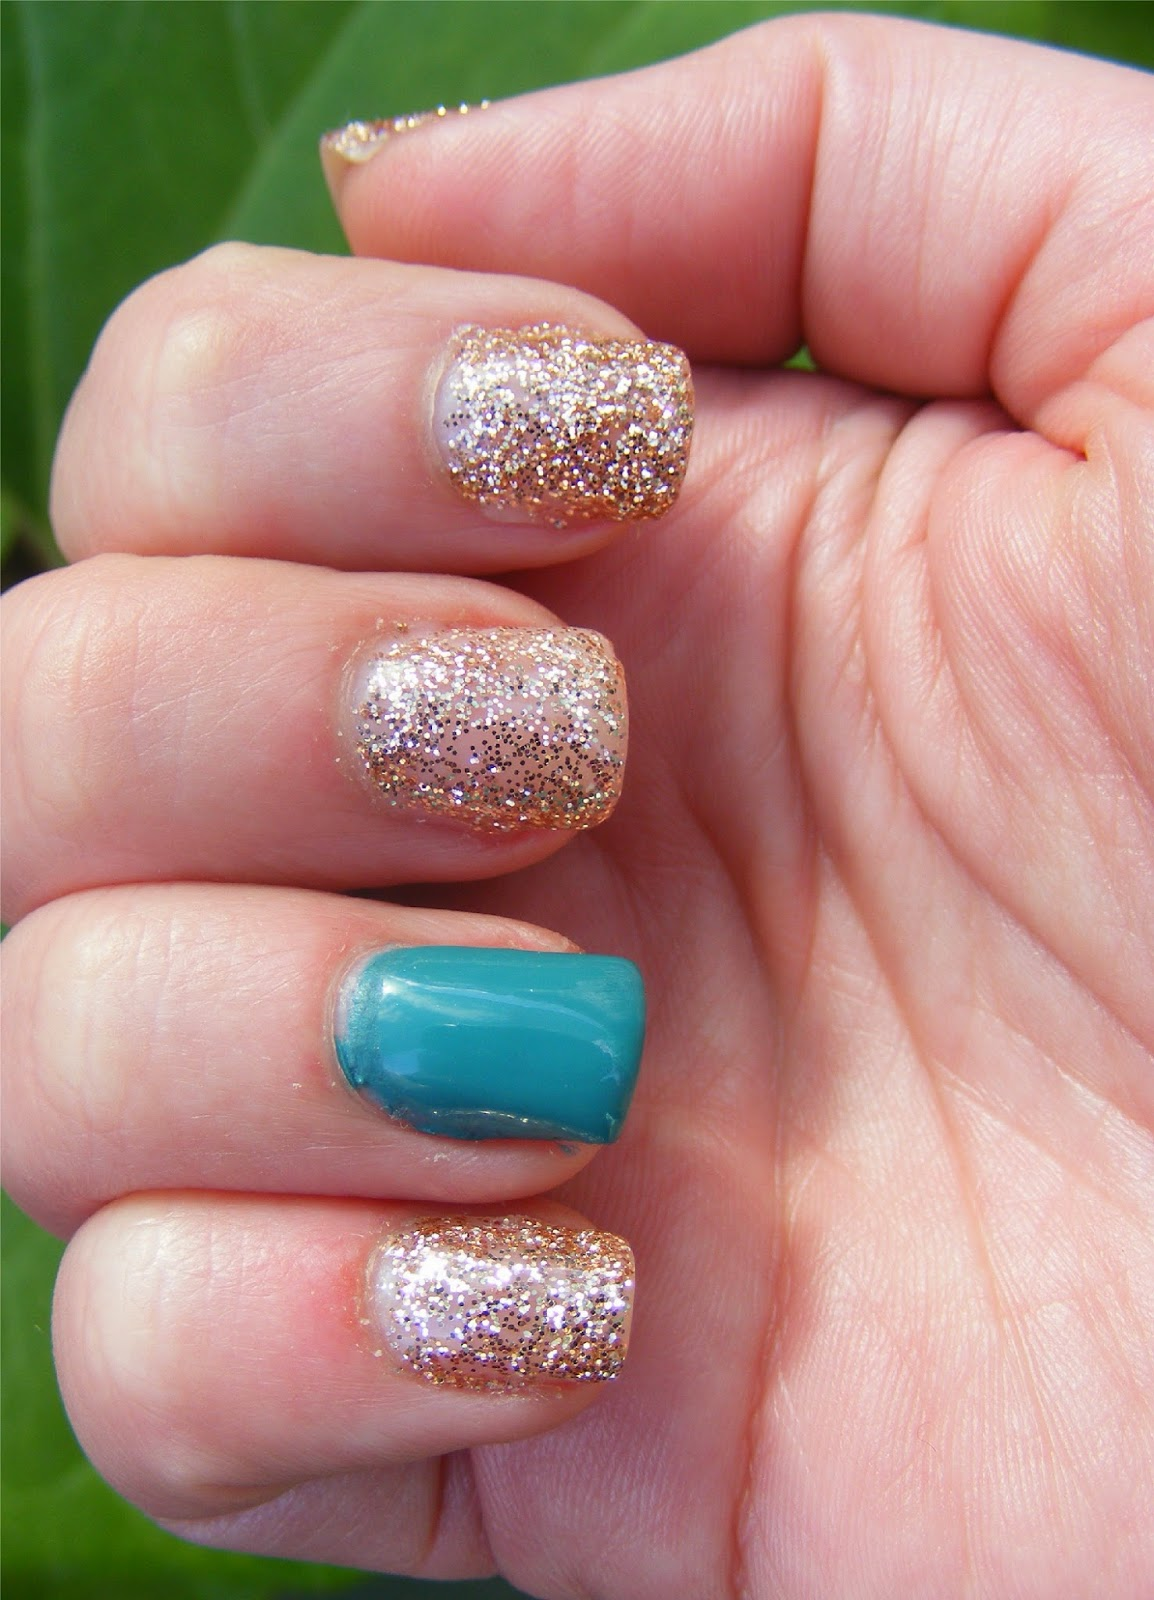 Cosette's Beauty Pantry: Nails Of The Day (NOTD): Glitter